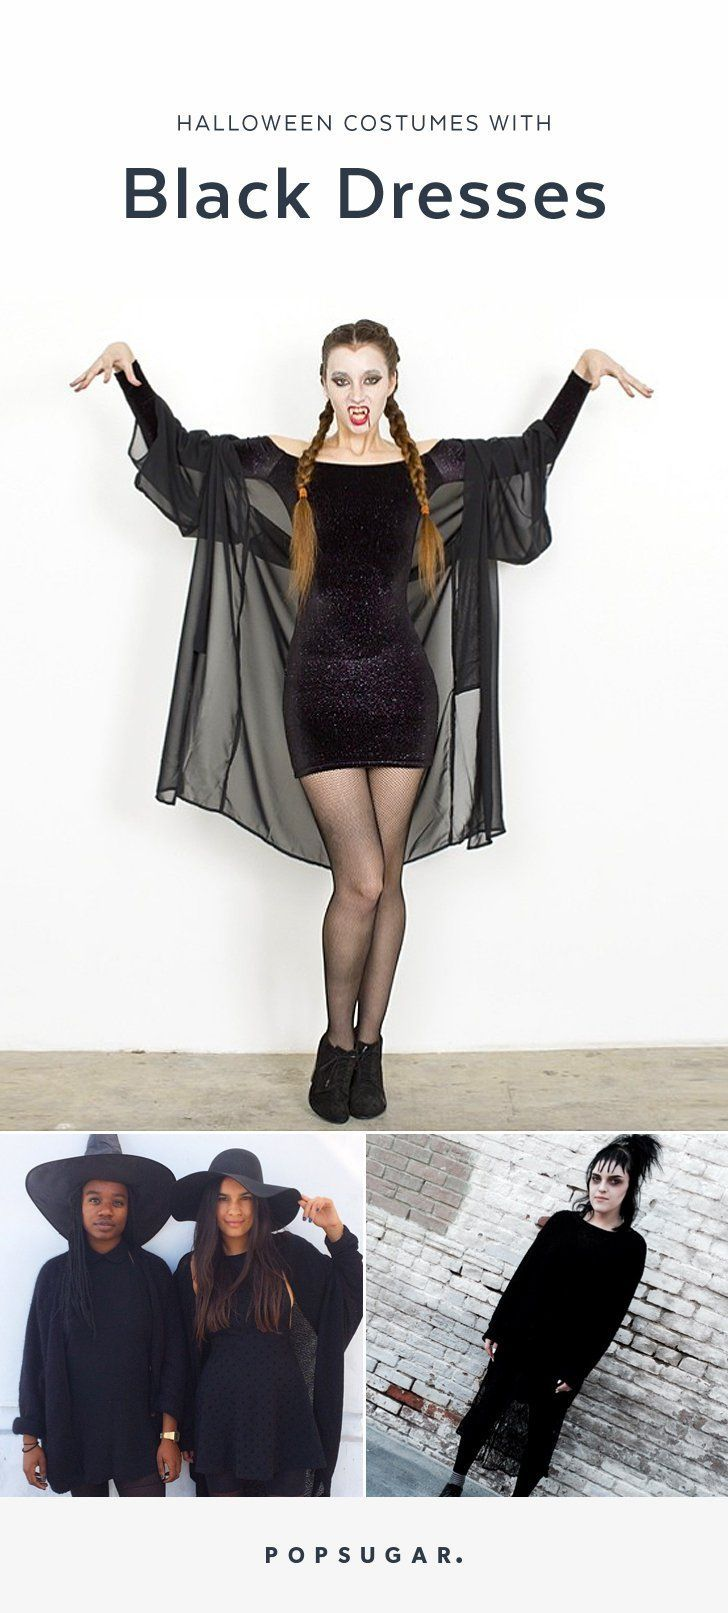 23 easy costumes you can diy with just a black dress | halloween